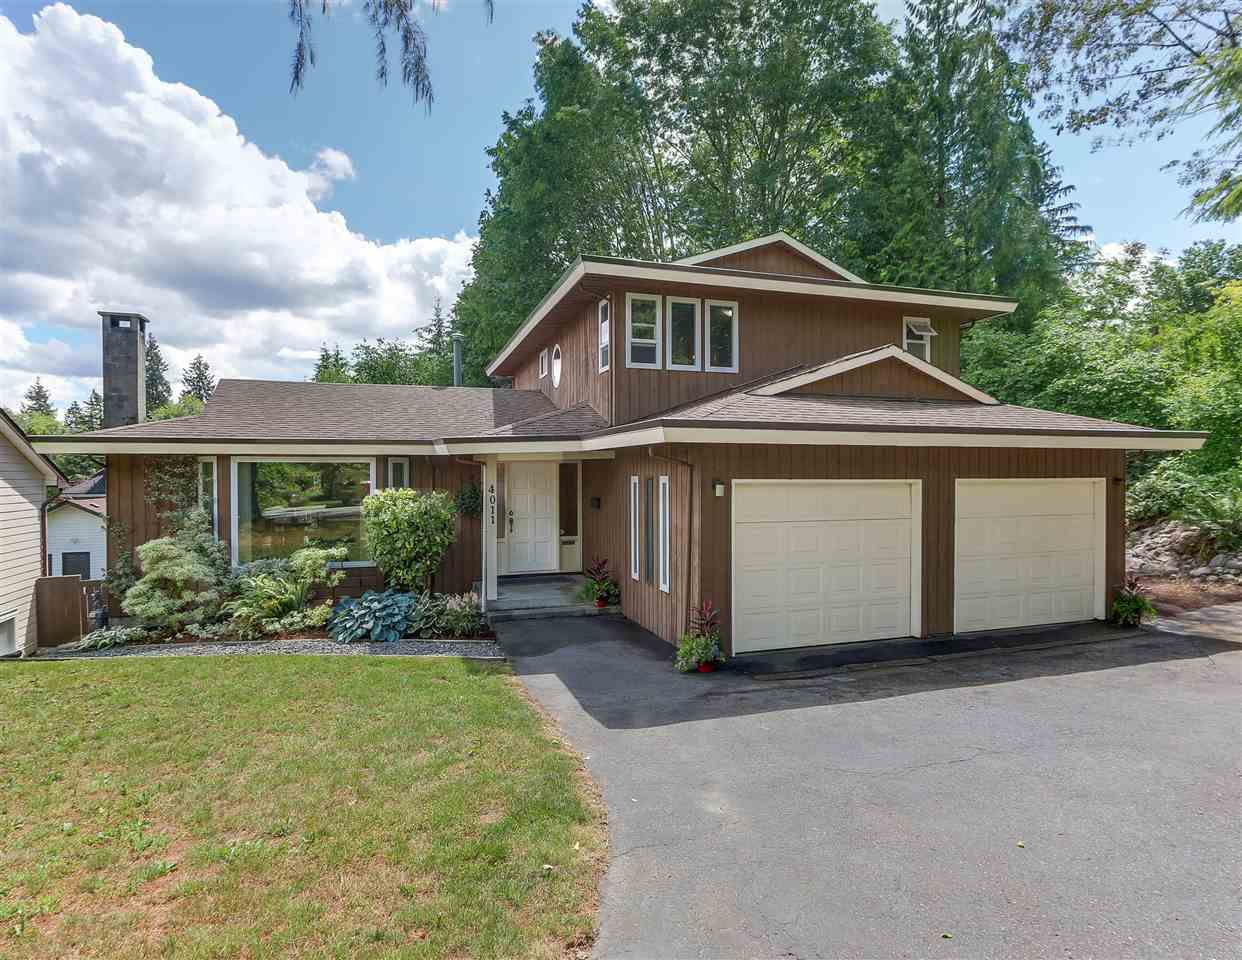 Main Photo: 4011 VIOLET STREET in North Vancouver: Indian River House for sale : MLS®# R2283511